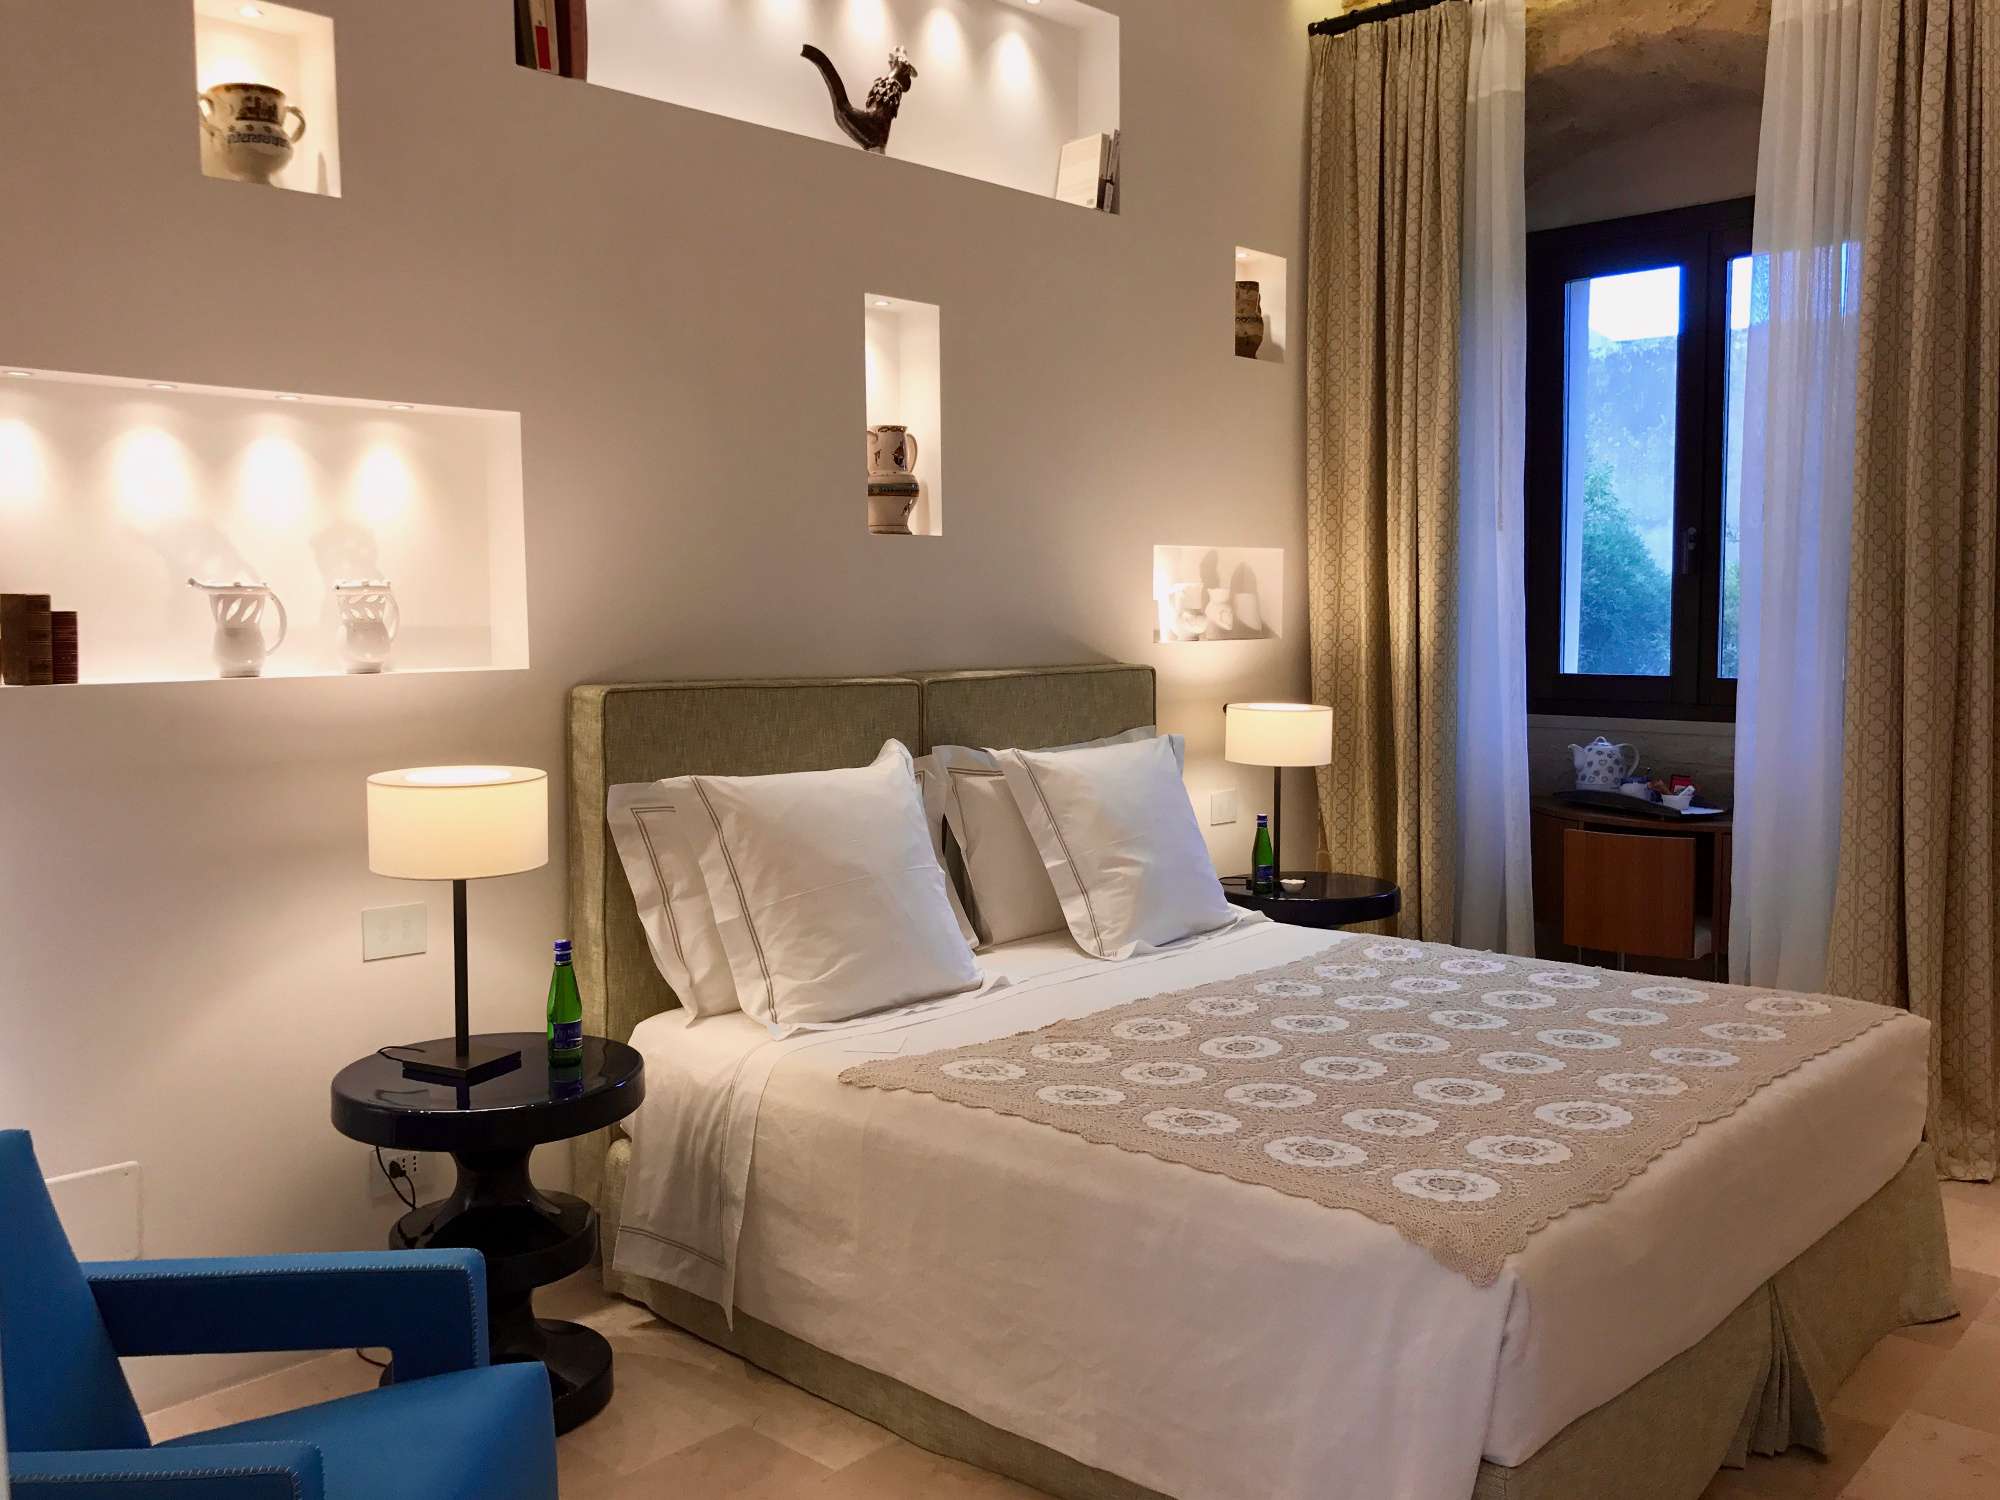 The accommodation boasts nine rooms and suites that have been curated with modern pieces from Italian designers.